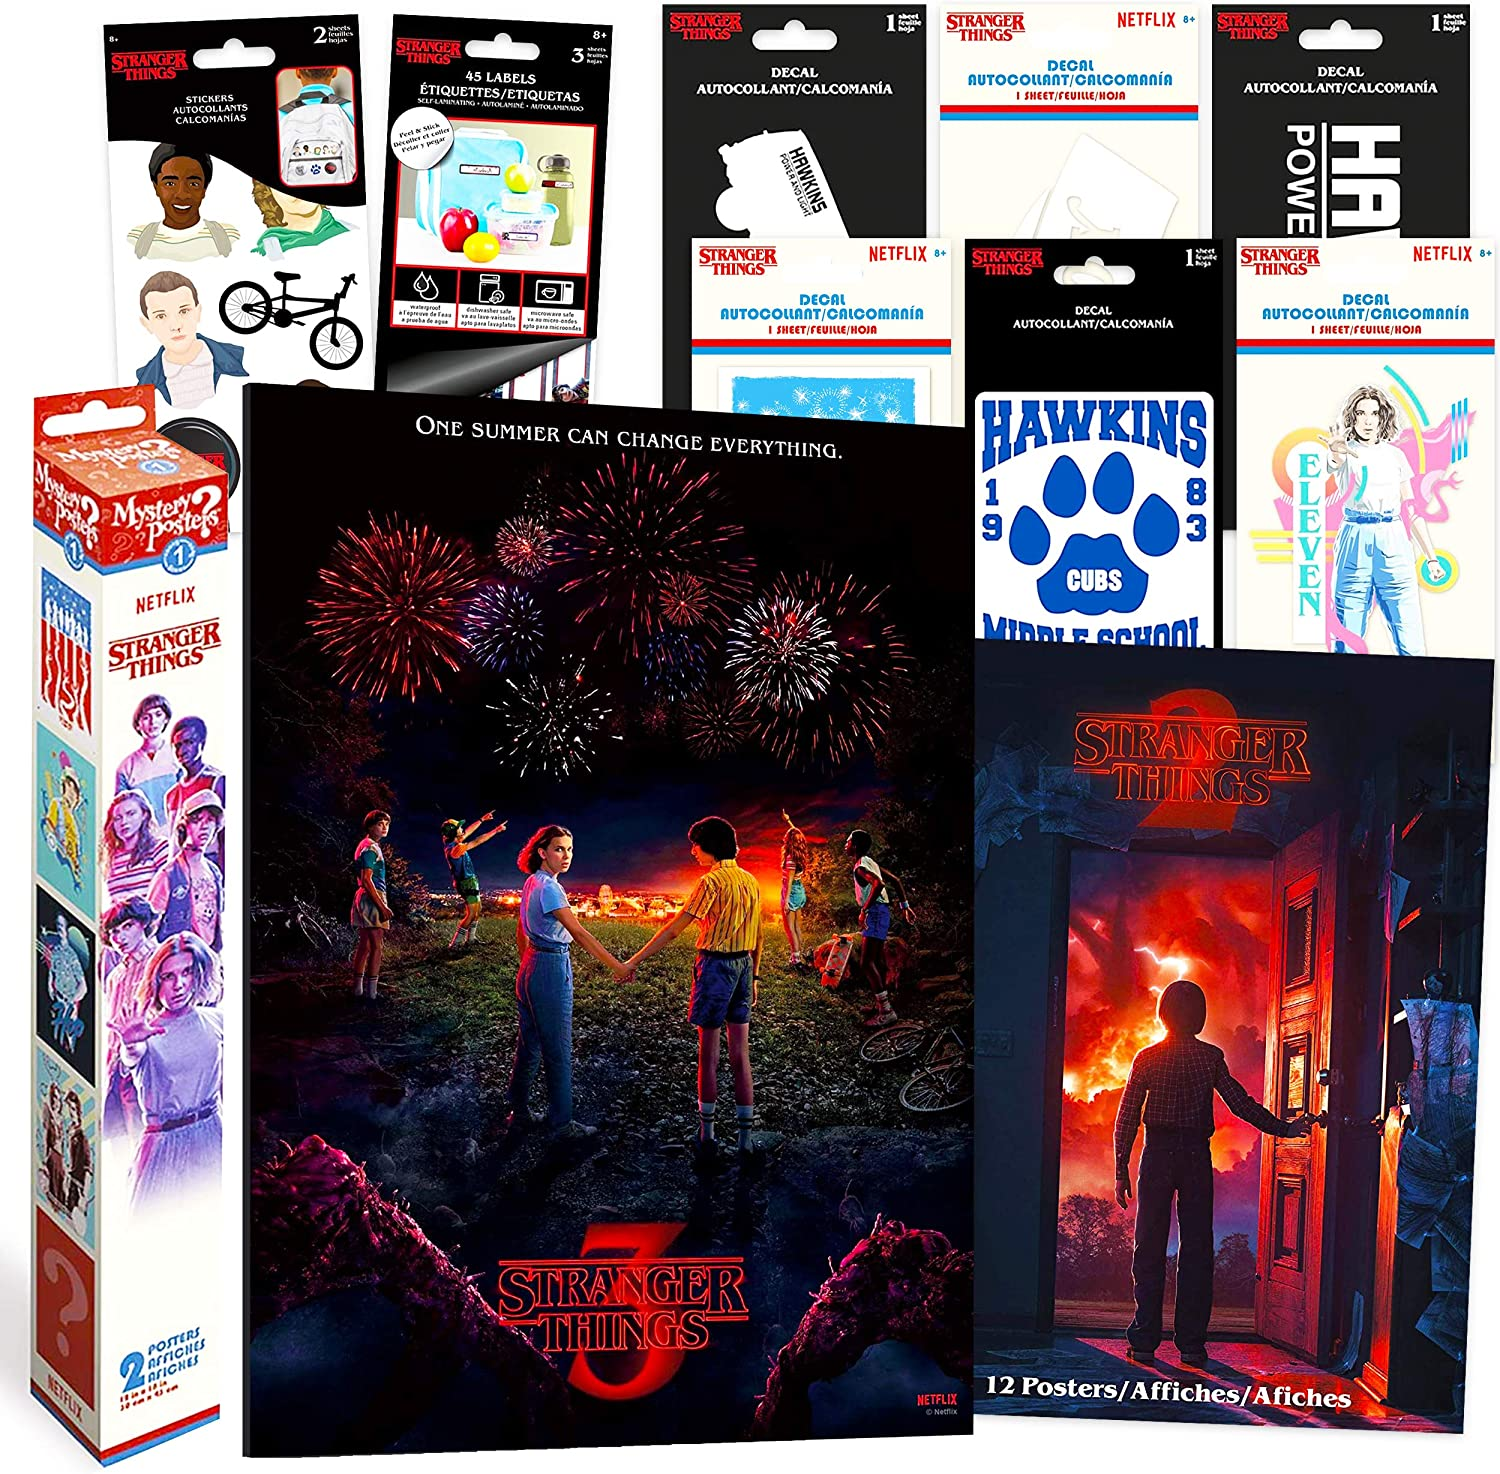 Stranger Things Artwork Decorations Wall Art Ultimate Bundle ~ 78 Pcs Stranger Things Posters, Stickers, Decals for Walls Laptop Car (Stranger Things Room Decor for Girls Boys Teens)